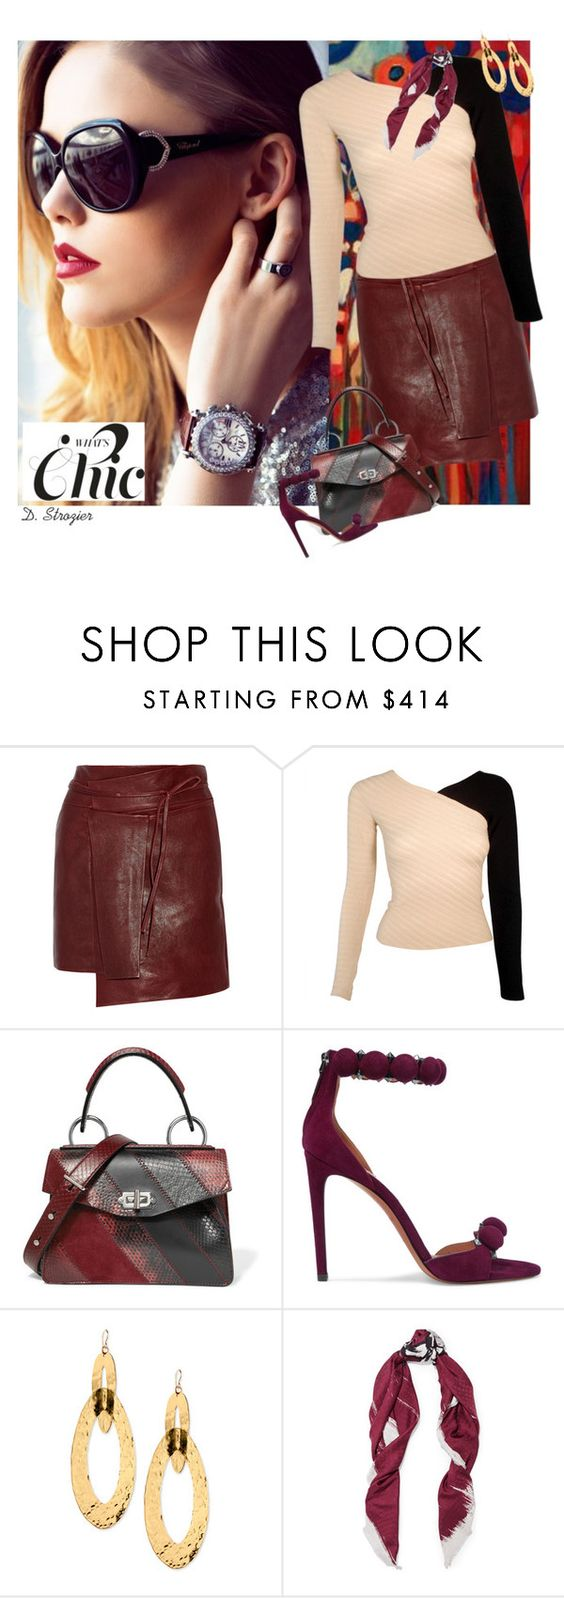 """""""Modern Chic"""" by deborah-strozier ❤ liked on Polyvore featuring Chopard, Isabel Marant, Proenza Schouler, Alaïa, Devon Leigh, Balenciaga and modern"""